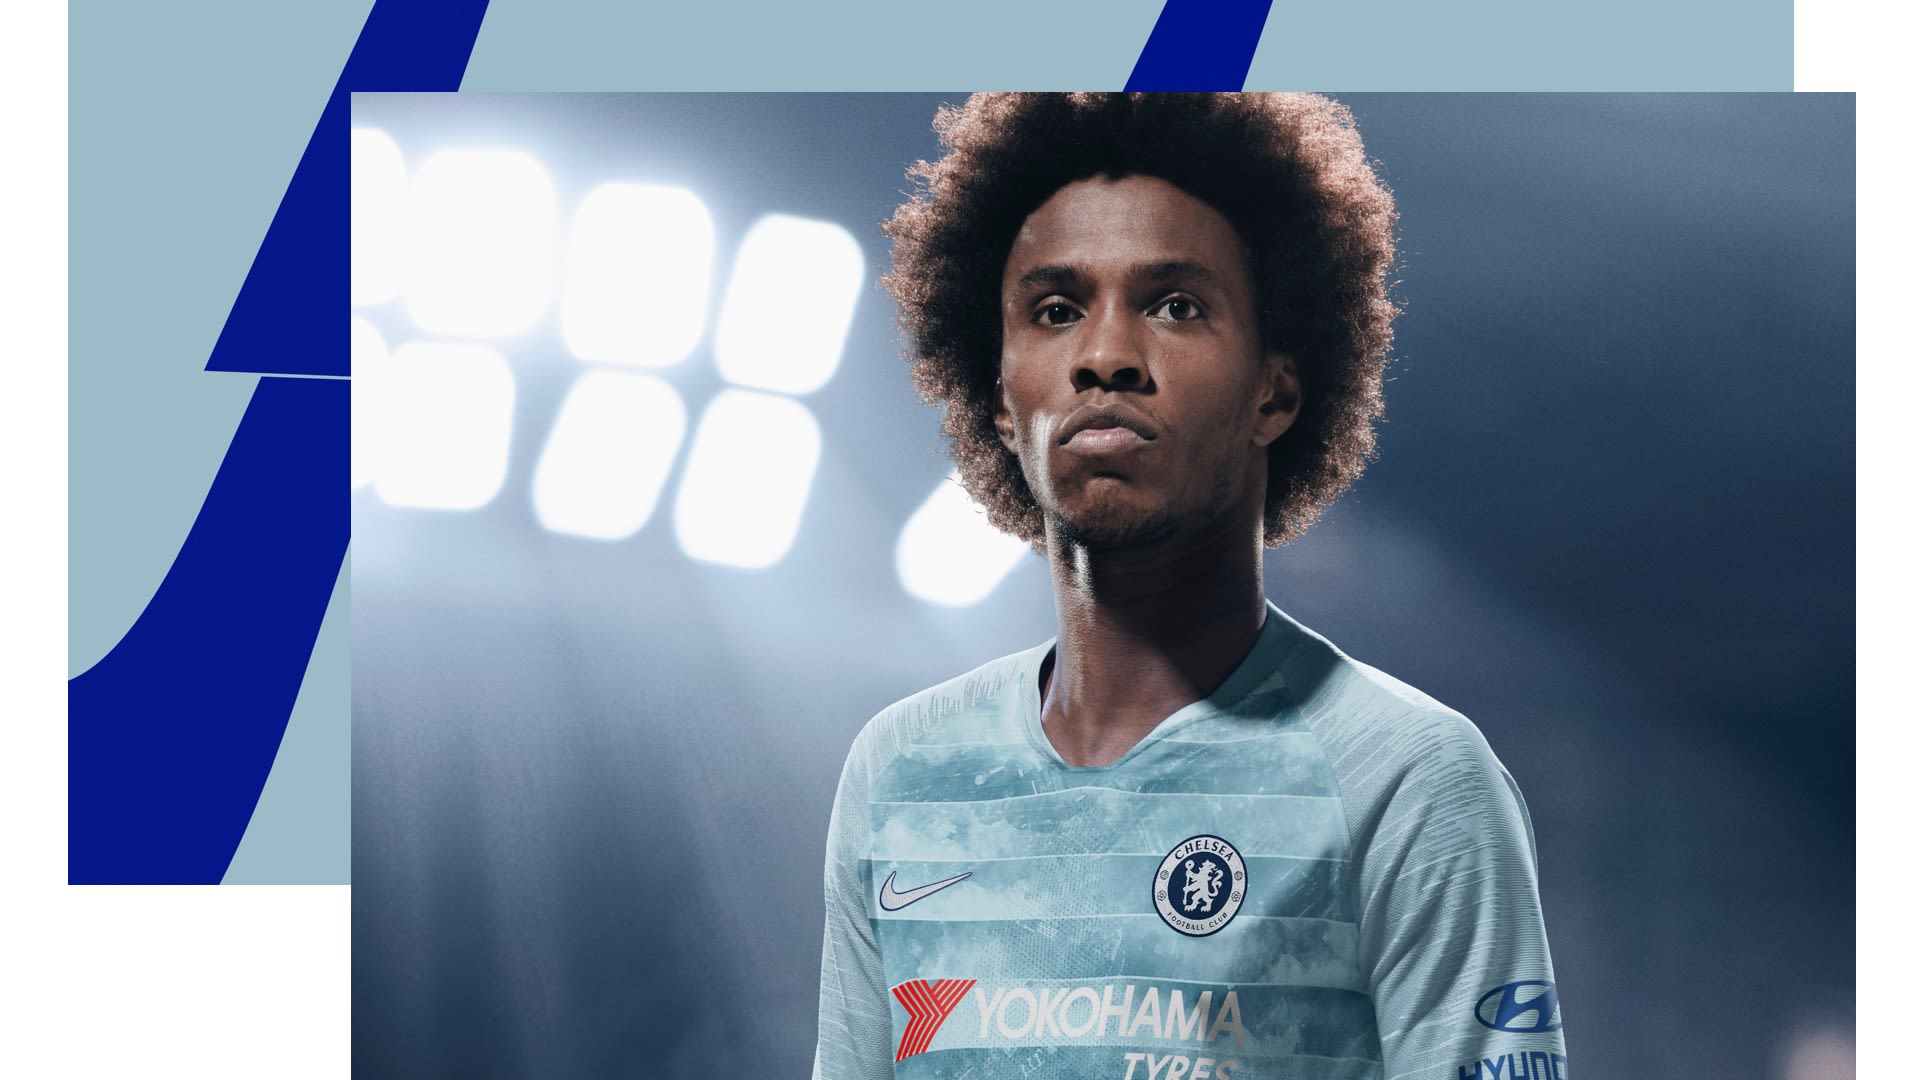 finest selection 38f40 84a8f ... Chelsea FC brings you inside the design process to help design a  Shirtholder s edition fan jersey. Just get the NikeConnect Chelsea FC Third  Jersey and ...